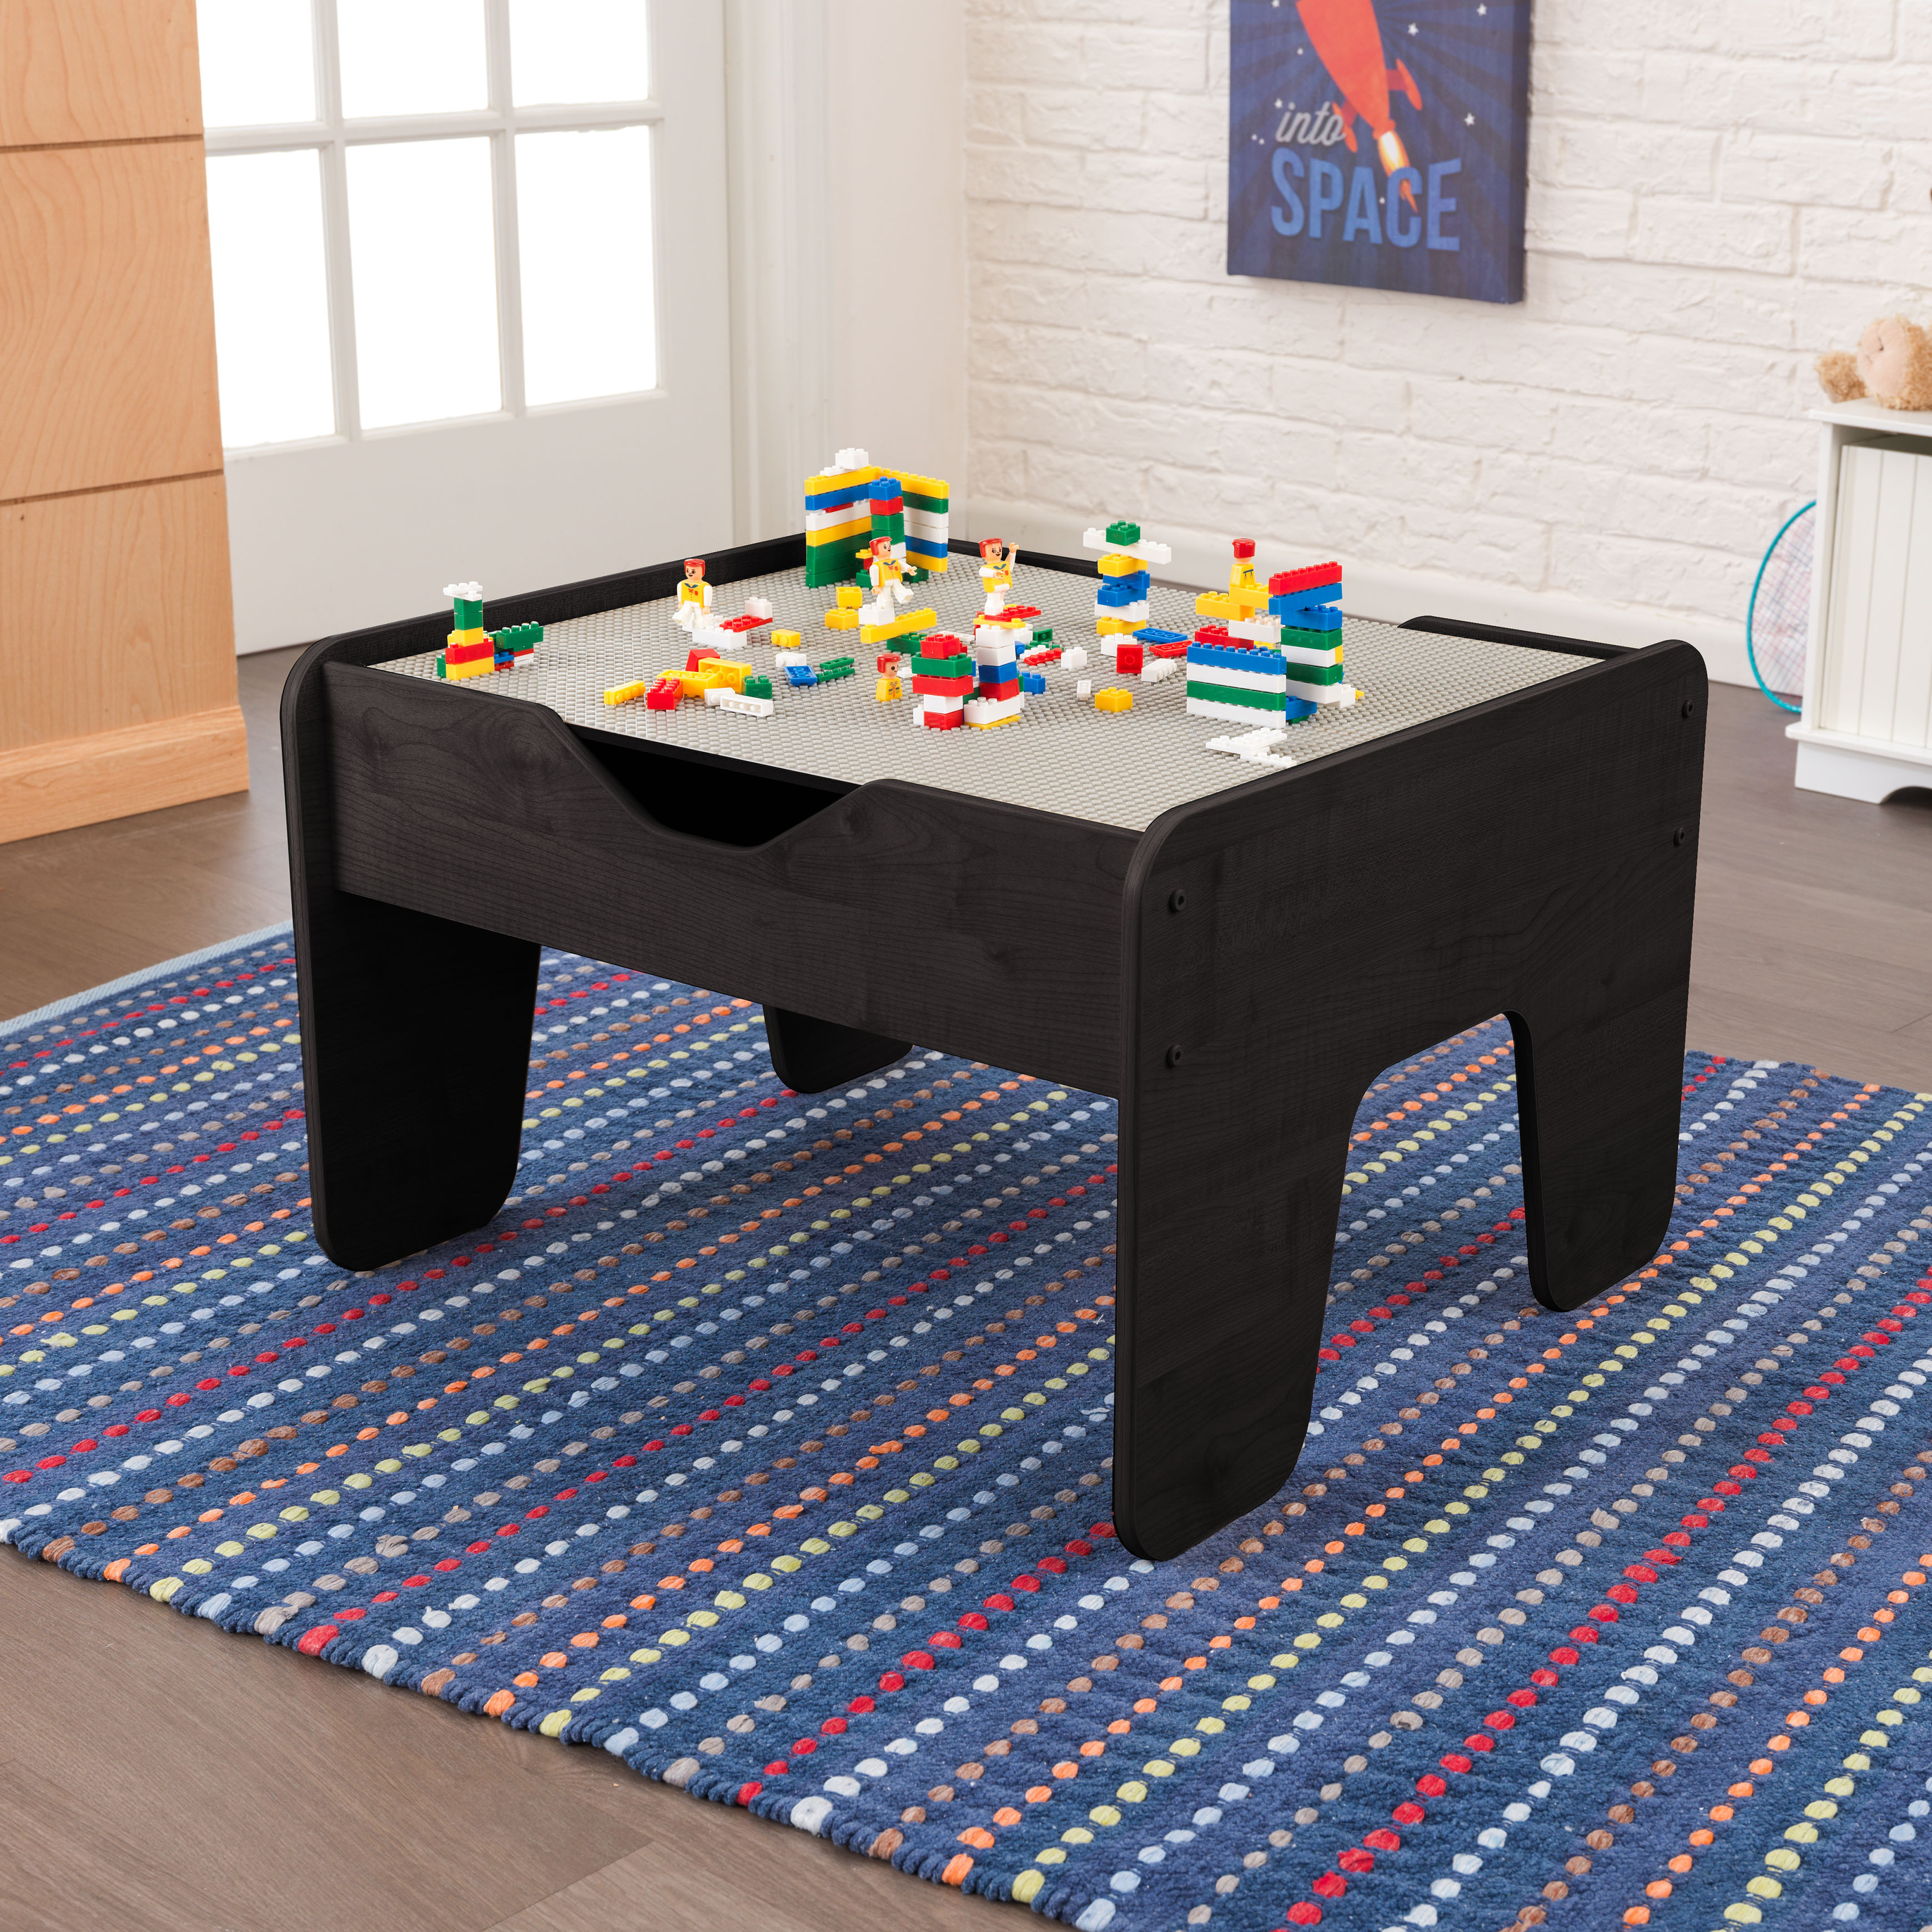 KidKraft Activity Table with Board - Gray & Espresso